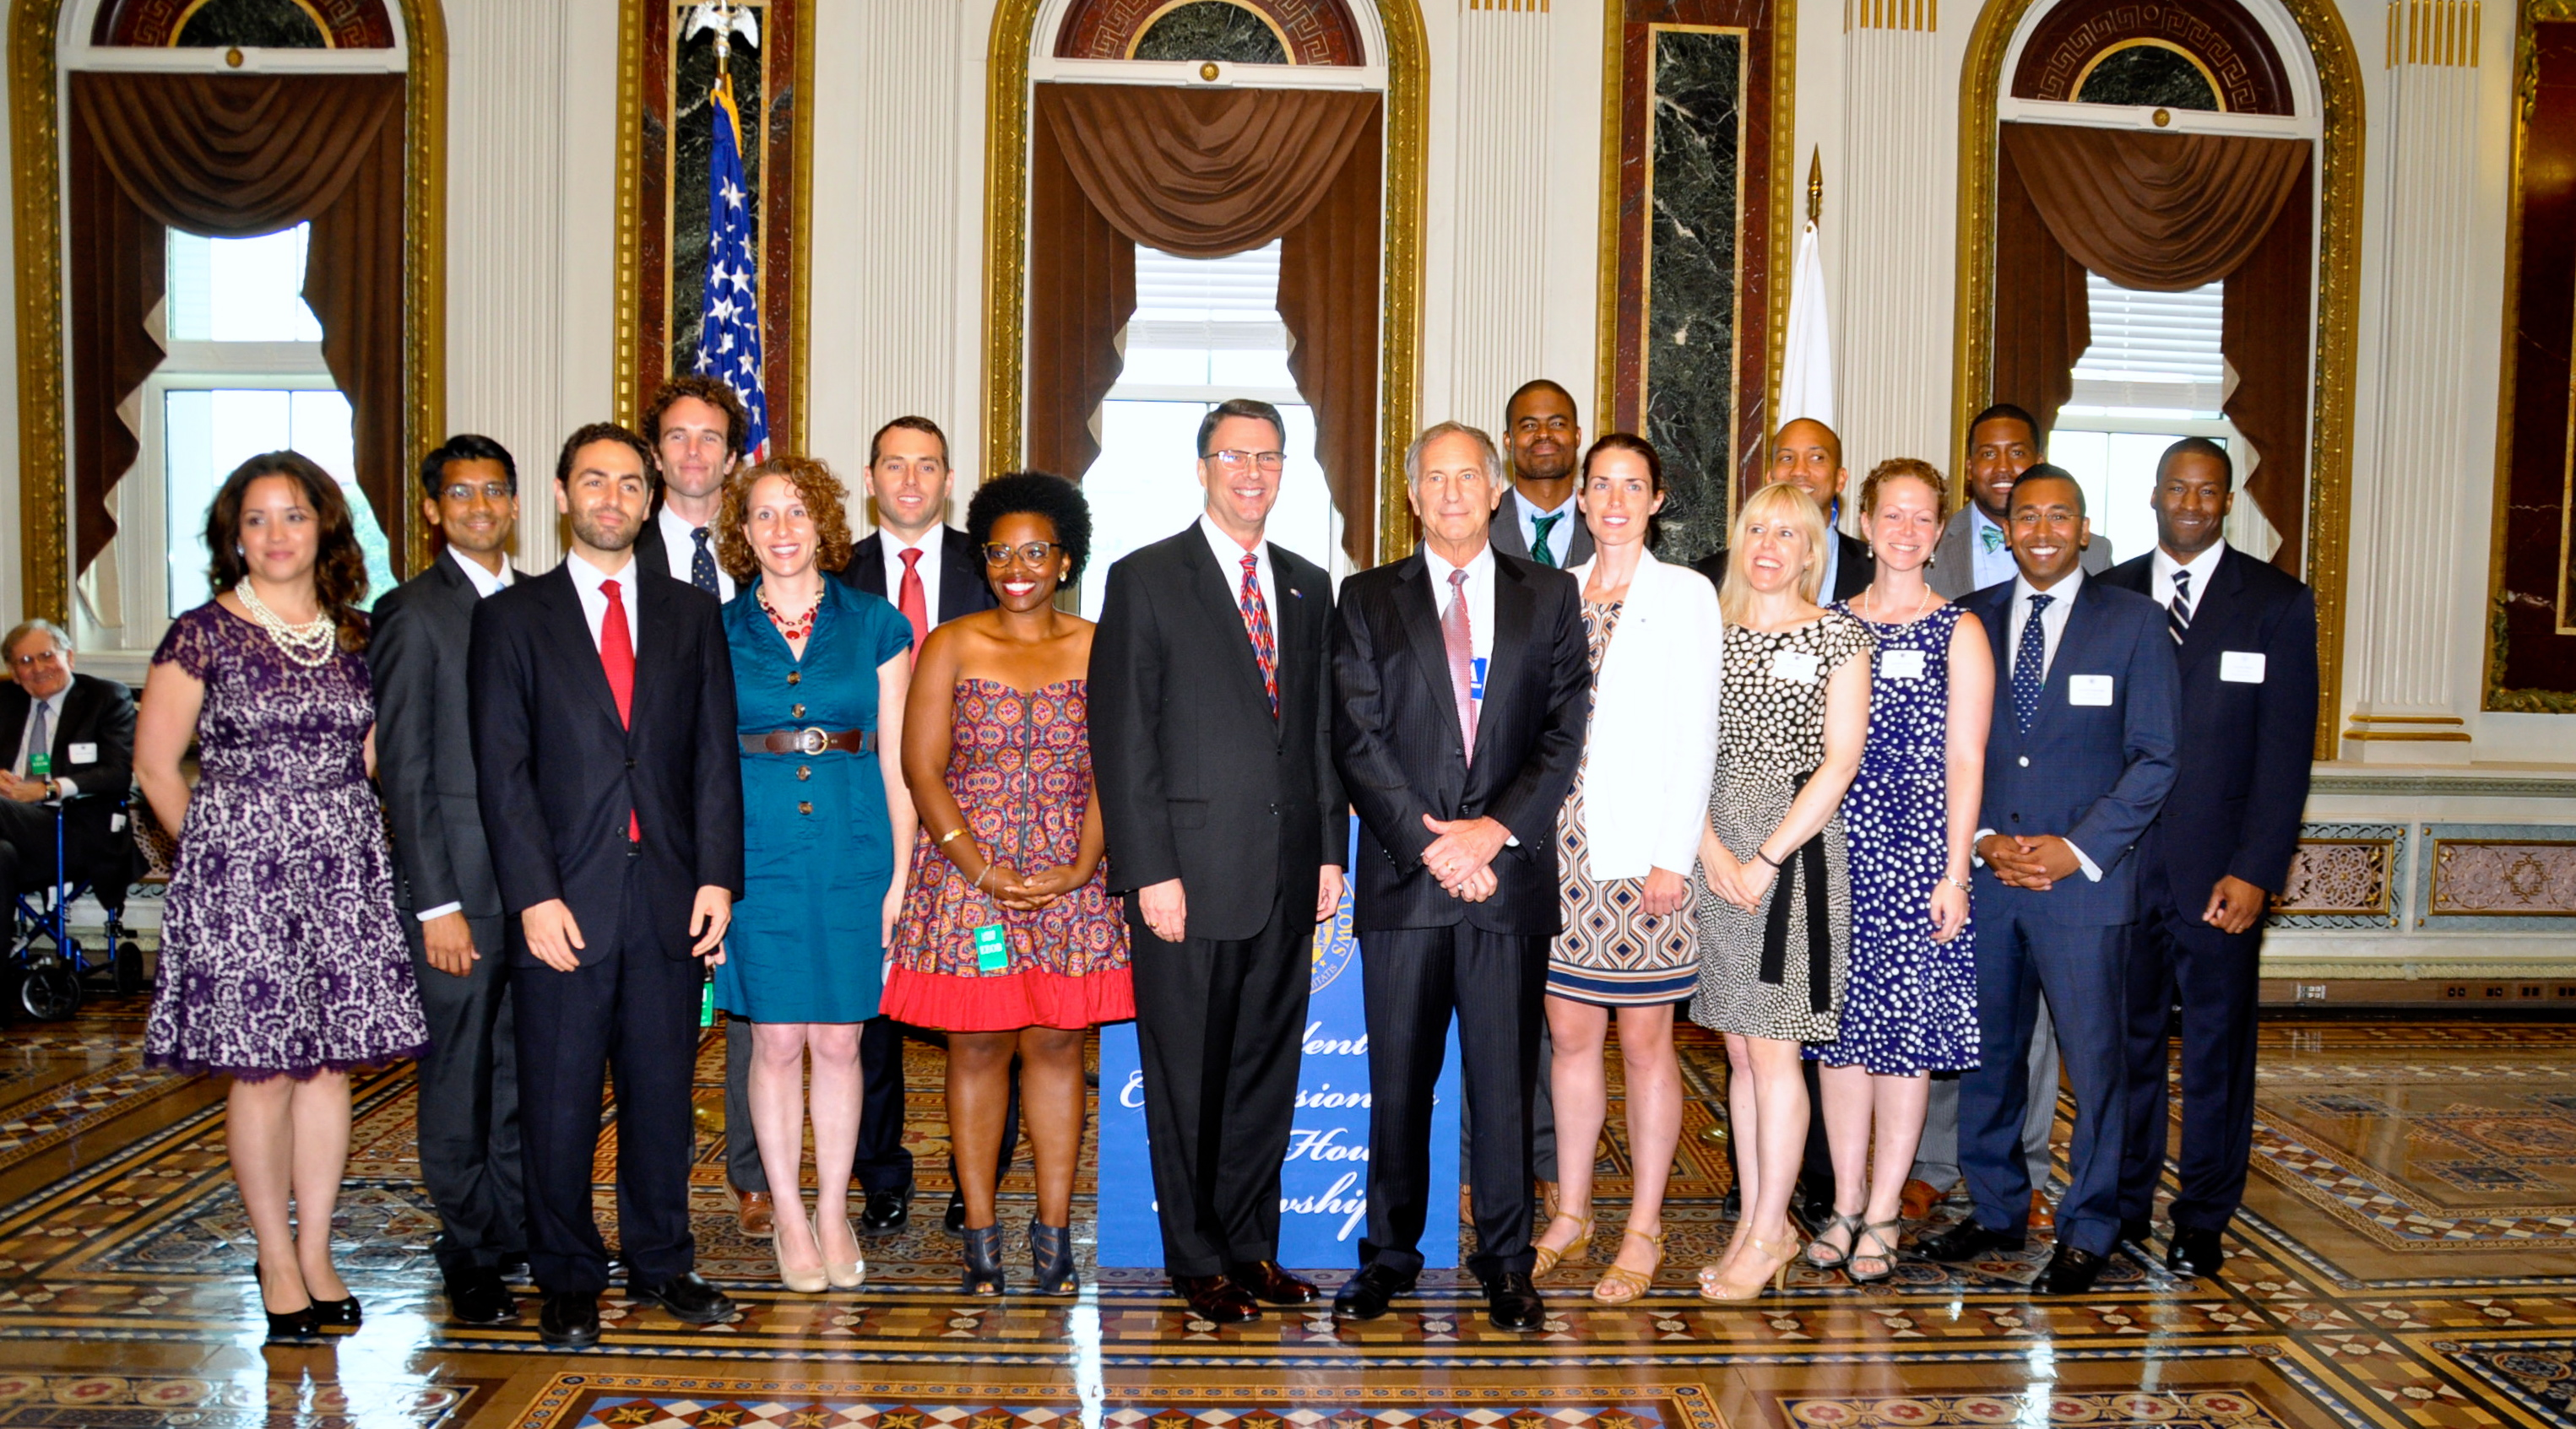 2012-13 White House Fellows